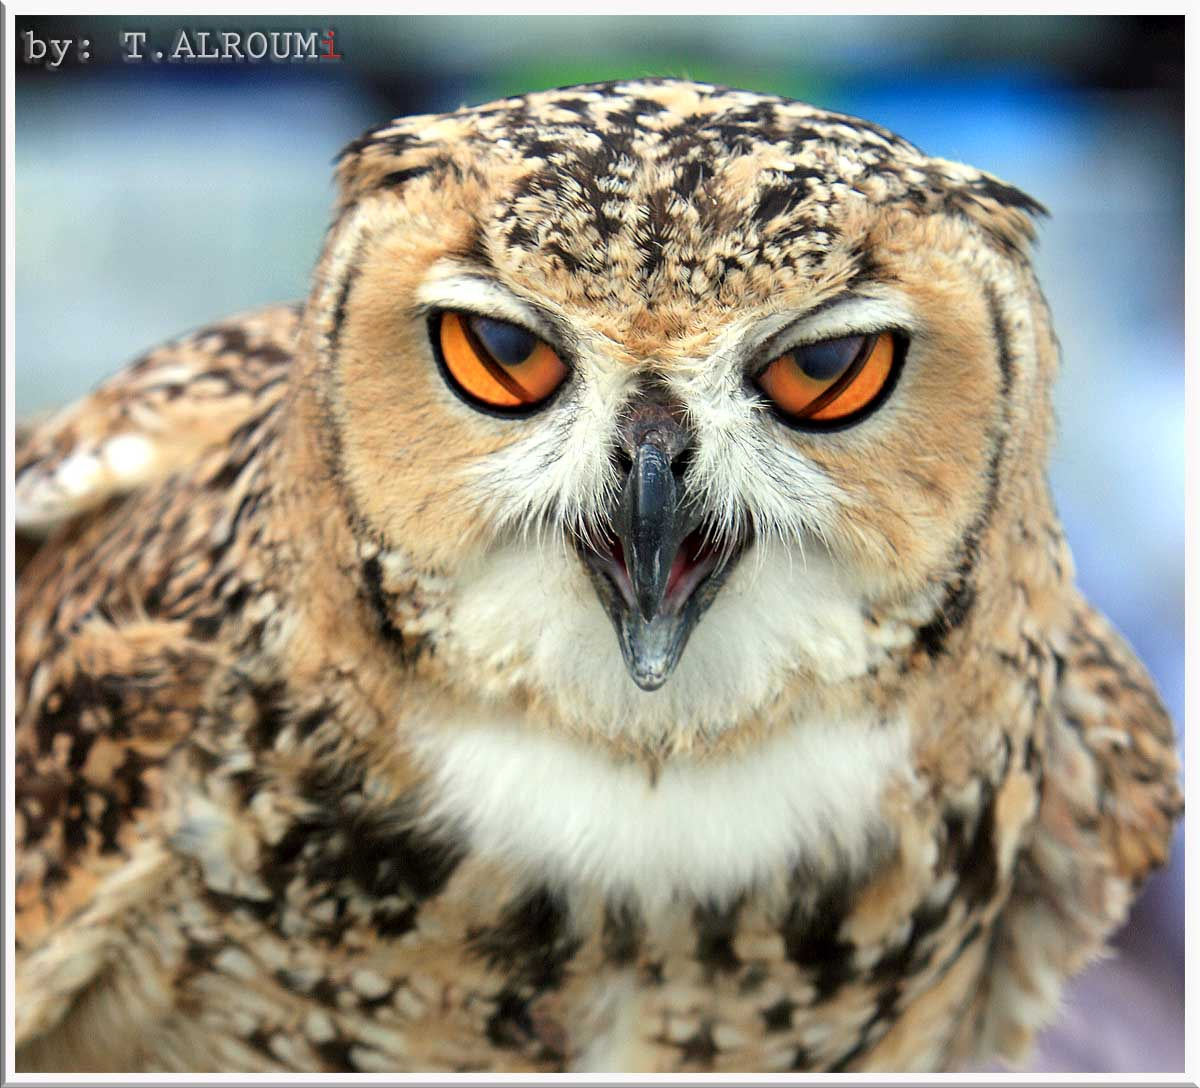 Photograph when the owl Blinking ;) by Tasneem ALRoumi on 500px